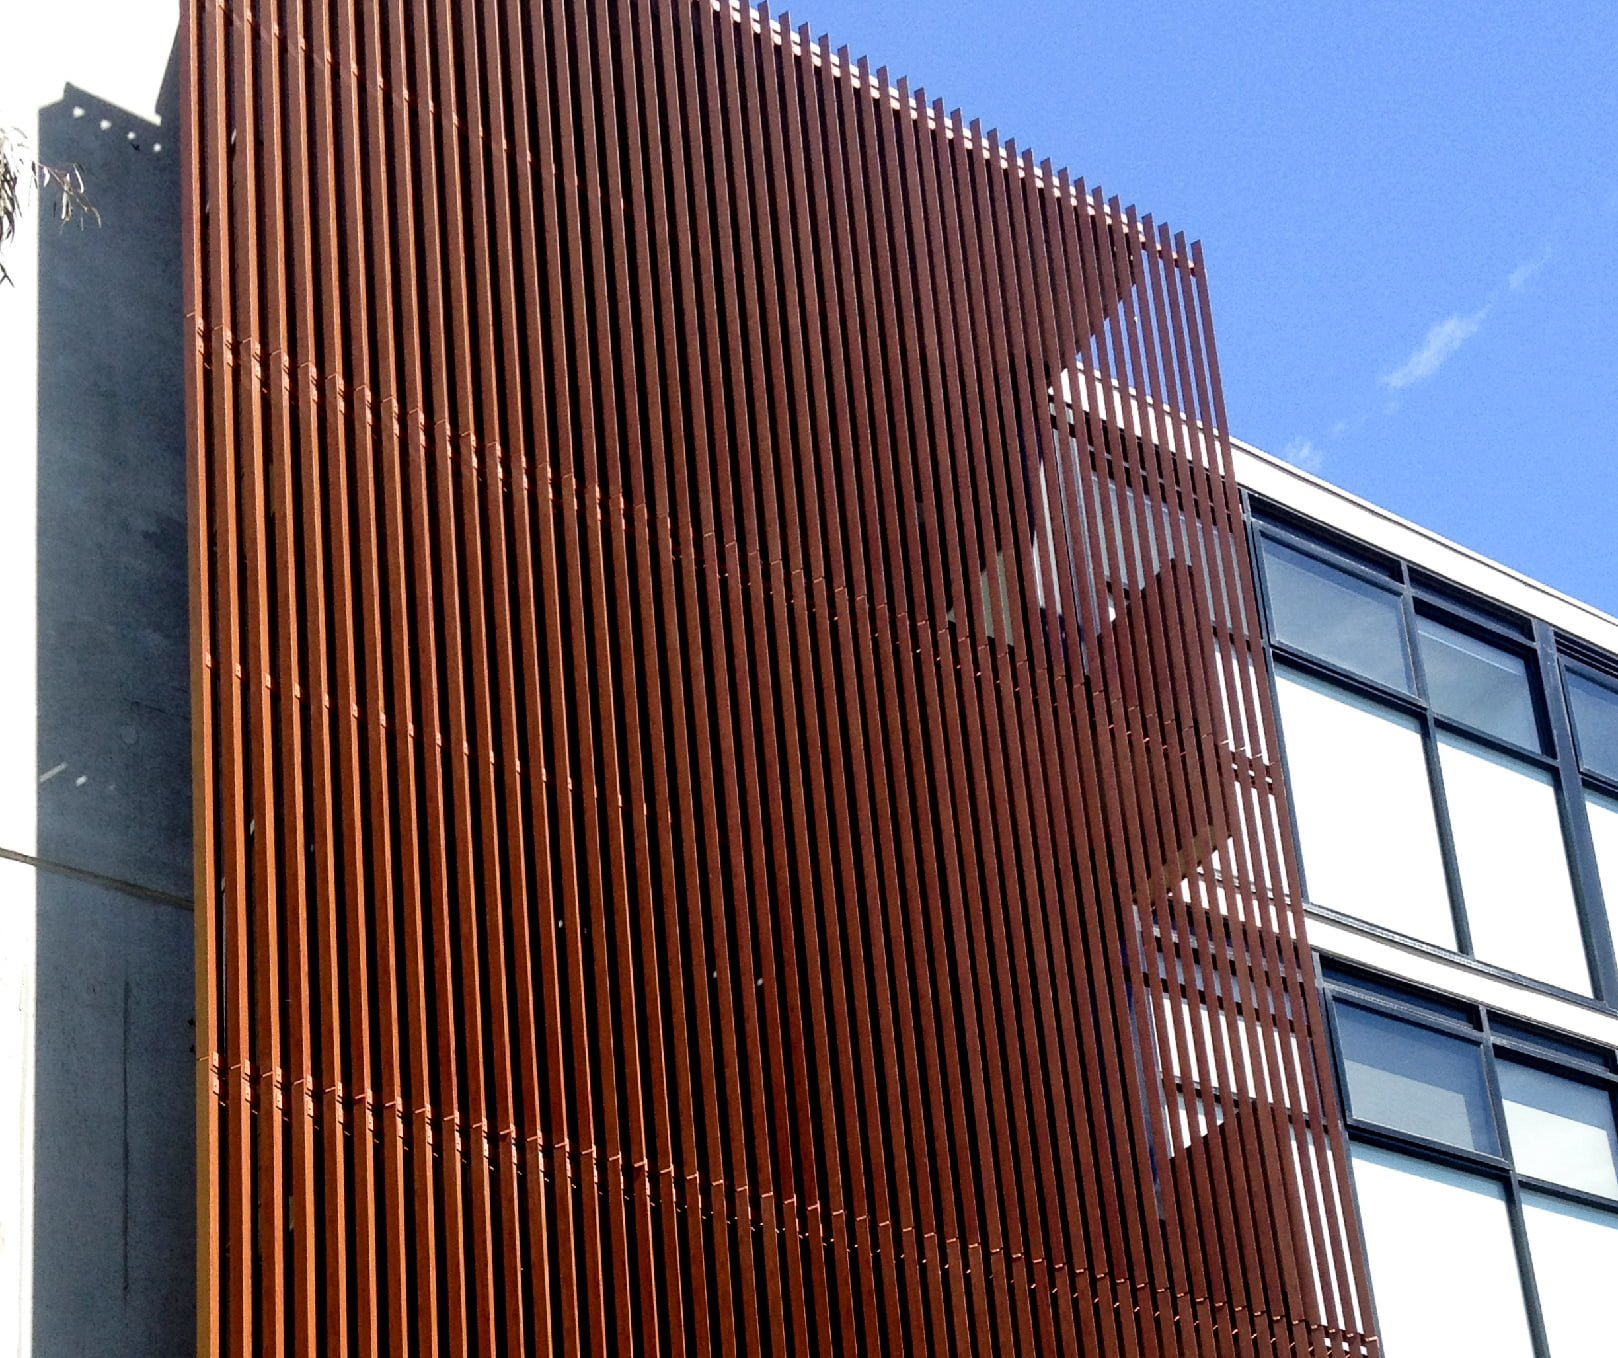 Battens Knotwood Architectural Products Wood Grain Aluminium